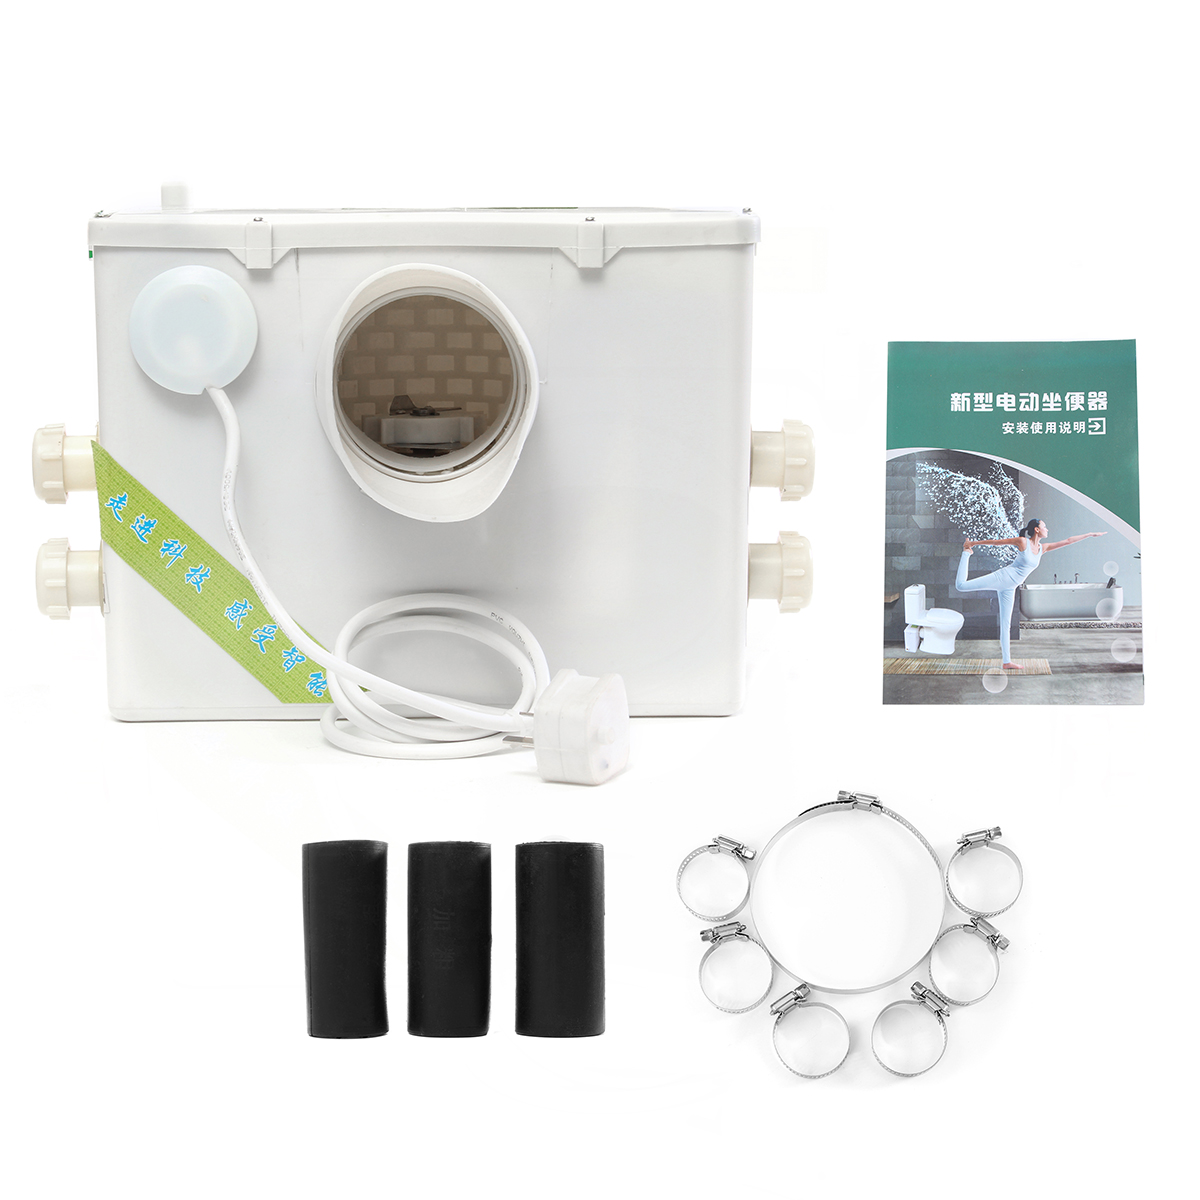 400W 2500L/h Multi-inlet Horizontal Macerator Disposal Pump Unit Toilet Sink Shower Fully Automatic for Bathroom median sagittal of female pelvis female pelvic cavity model reproductive system anatomical model